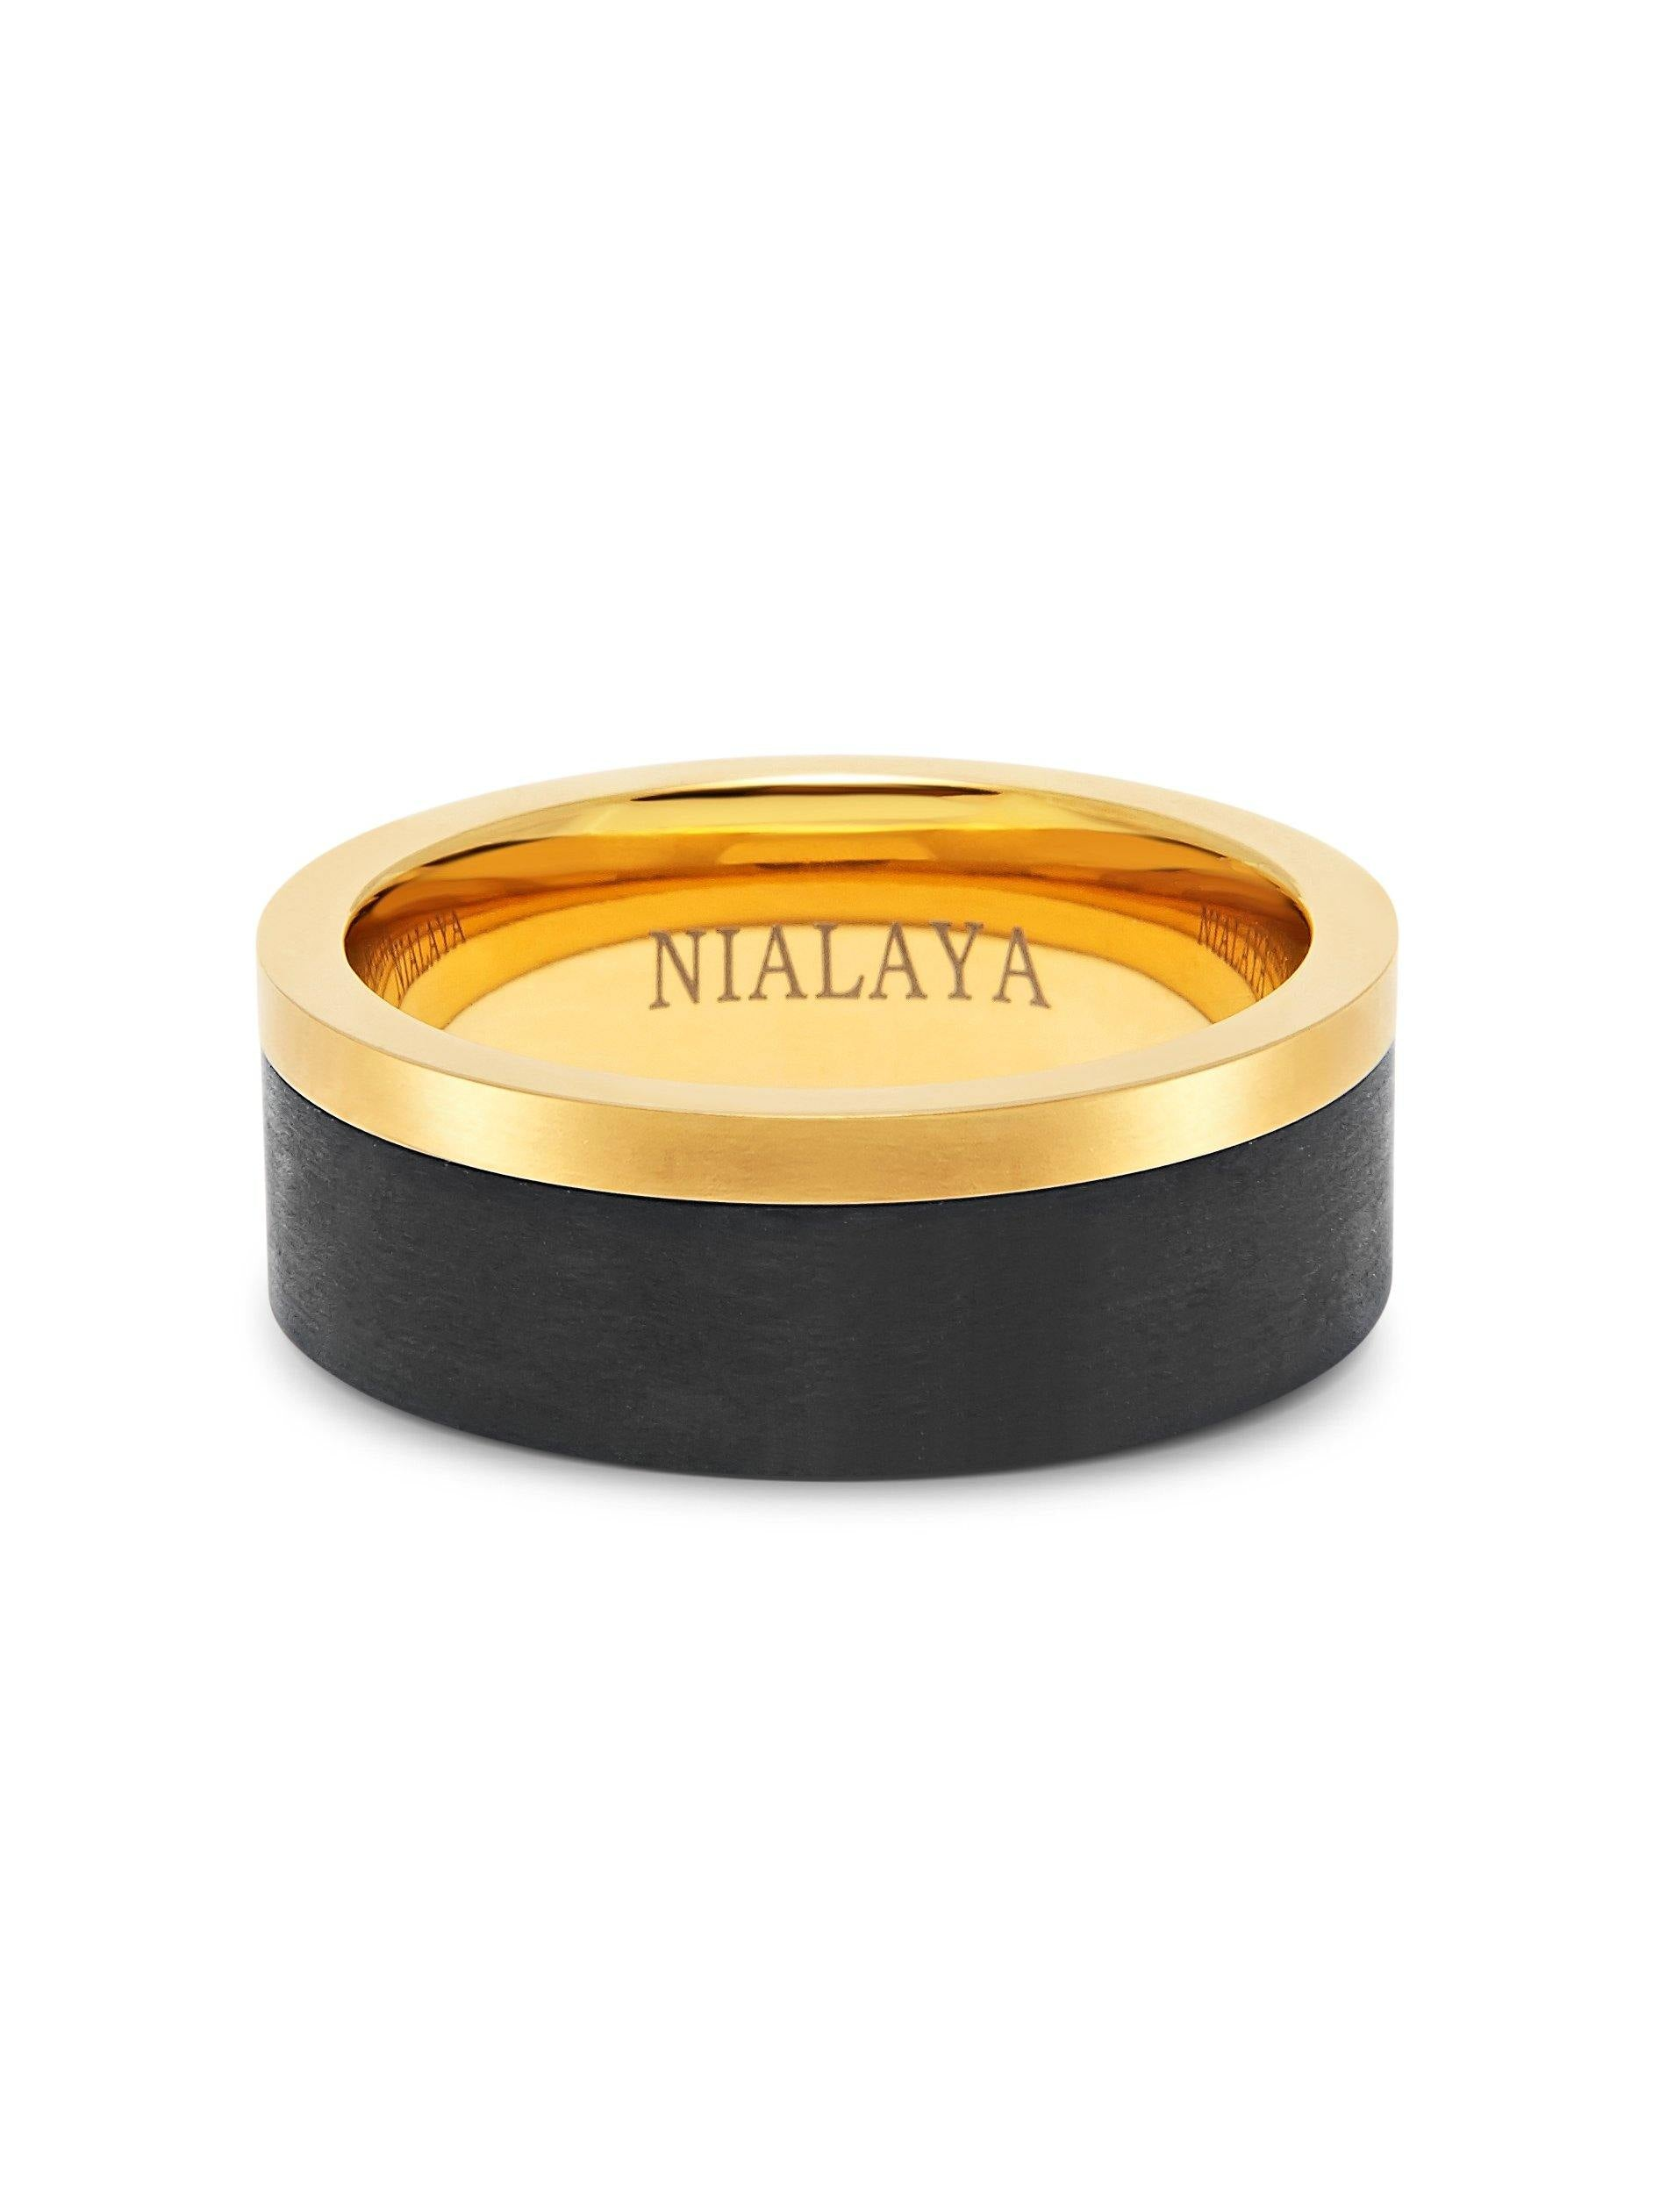 Men's Carbon Fiber Ring with Gold Band - NIALAYA INC